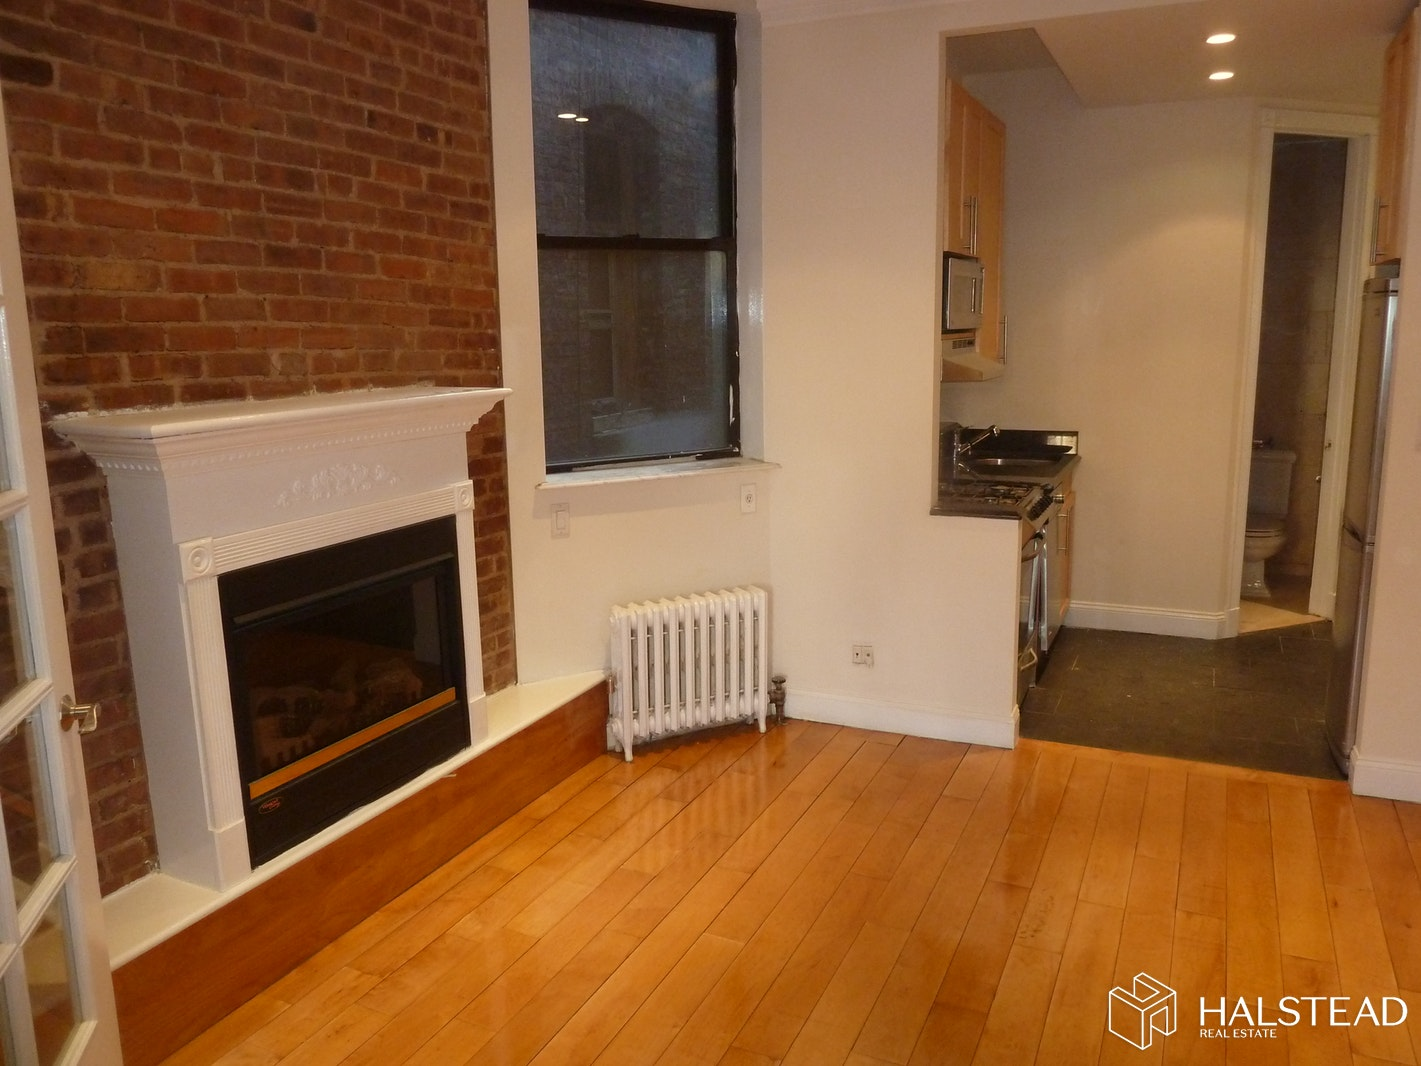 75 East 3rd Street D3, East Village, NYC, 10003, Price Not Disclosed, Rented Property, Halstead Real Estate, Photo 2